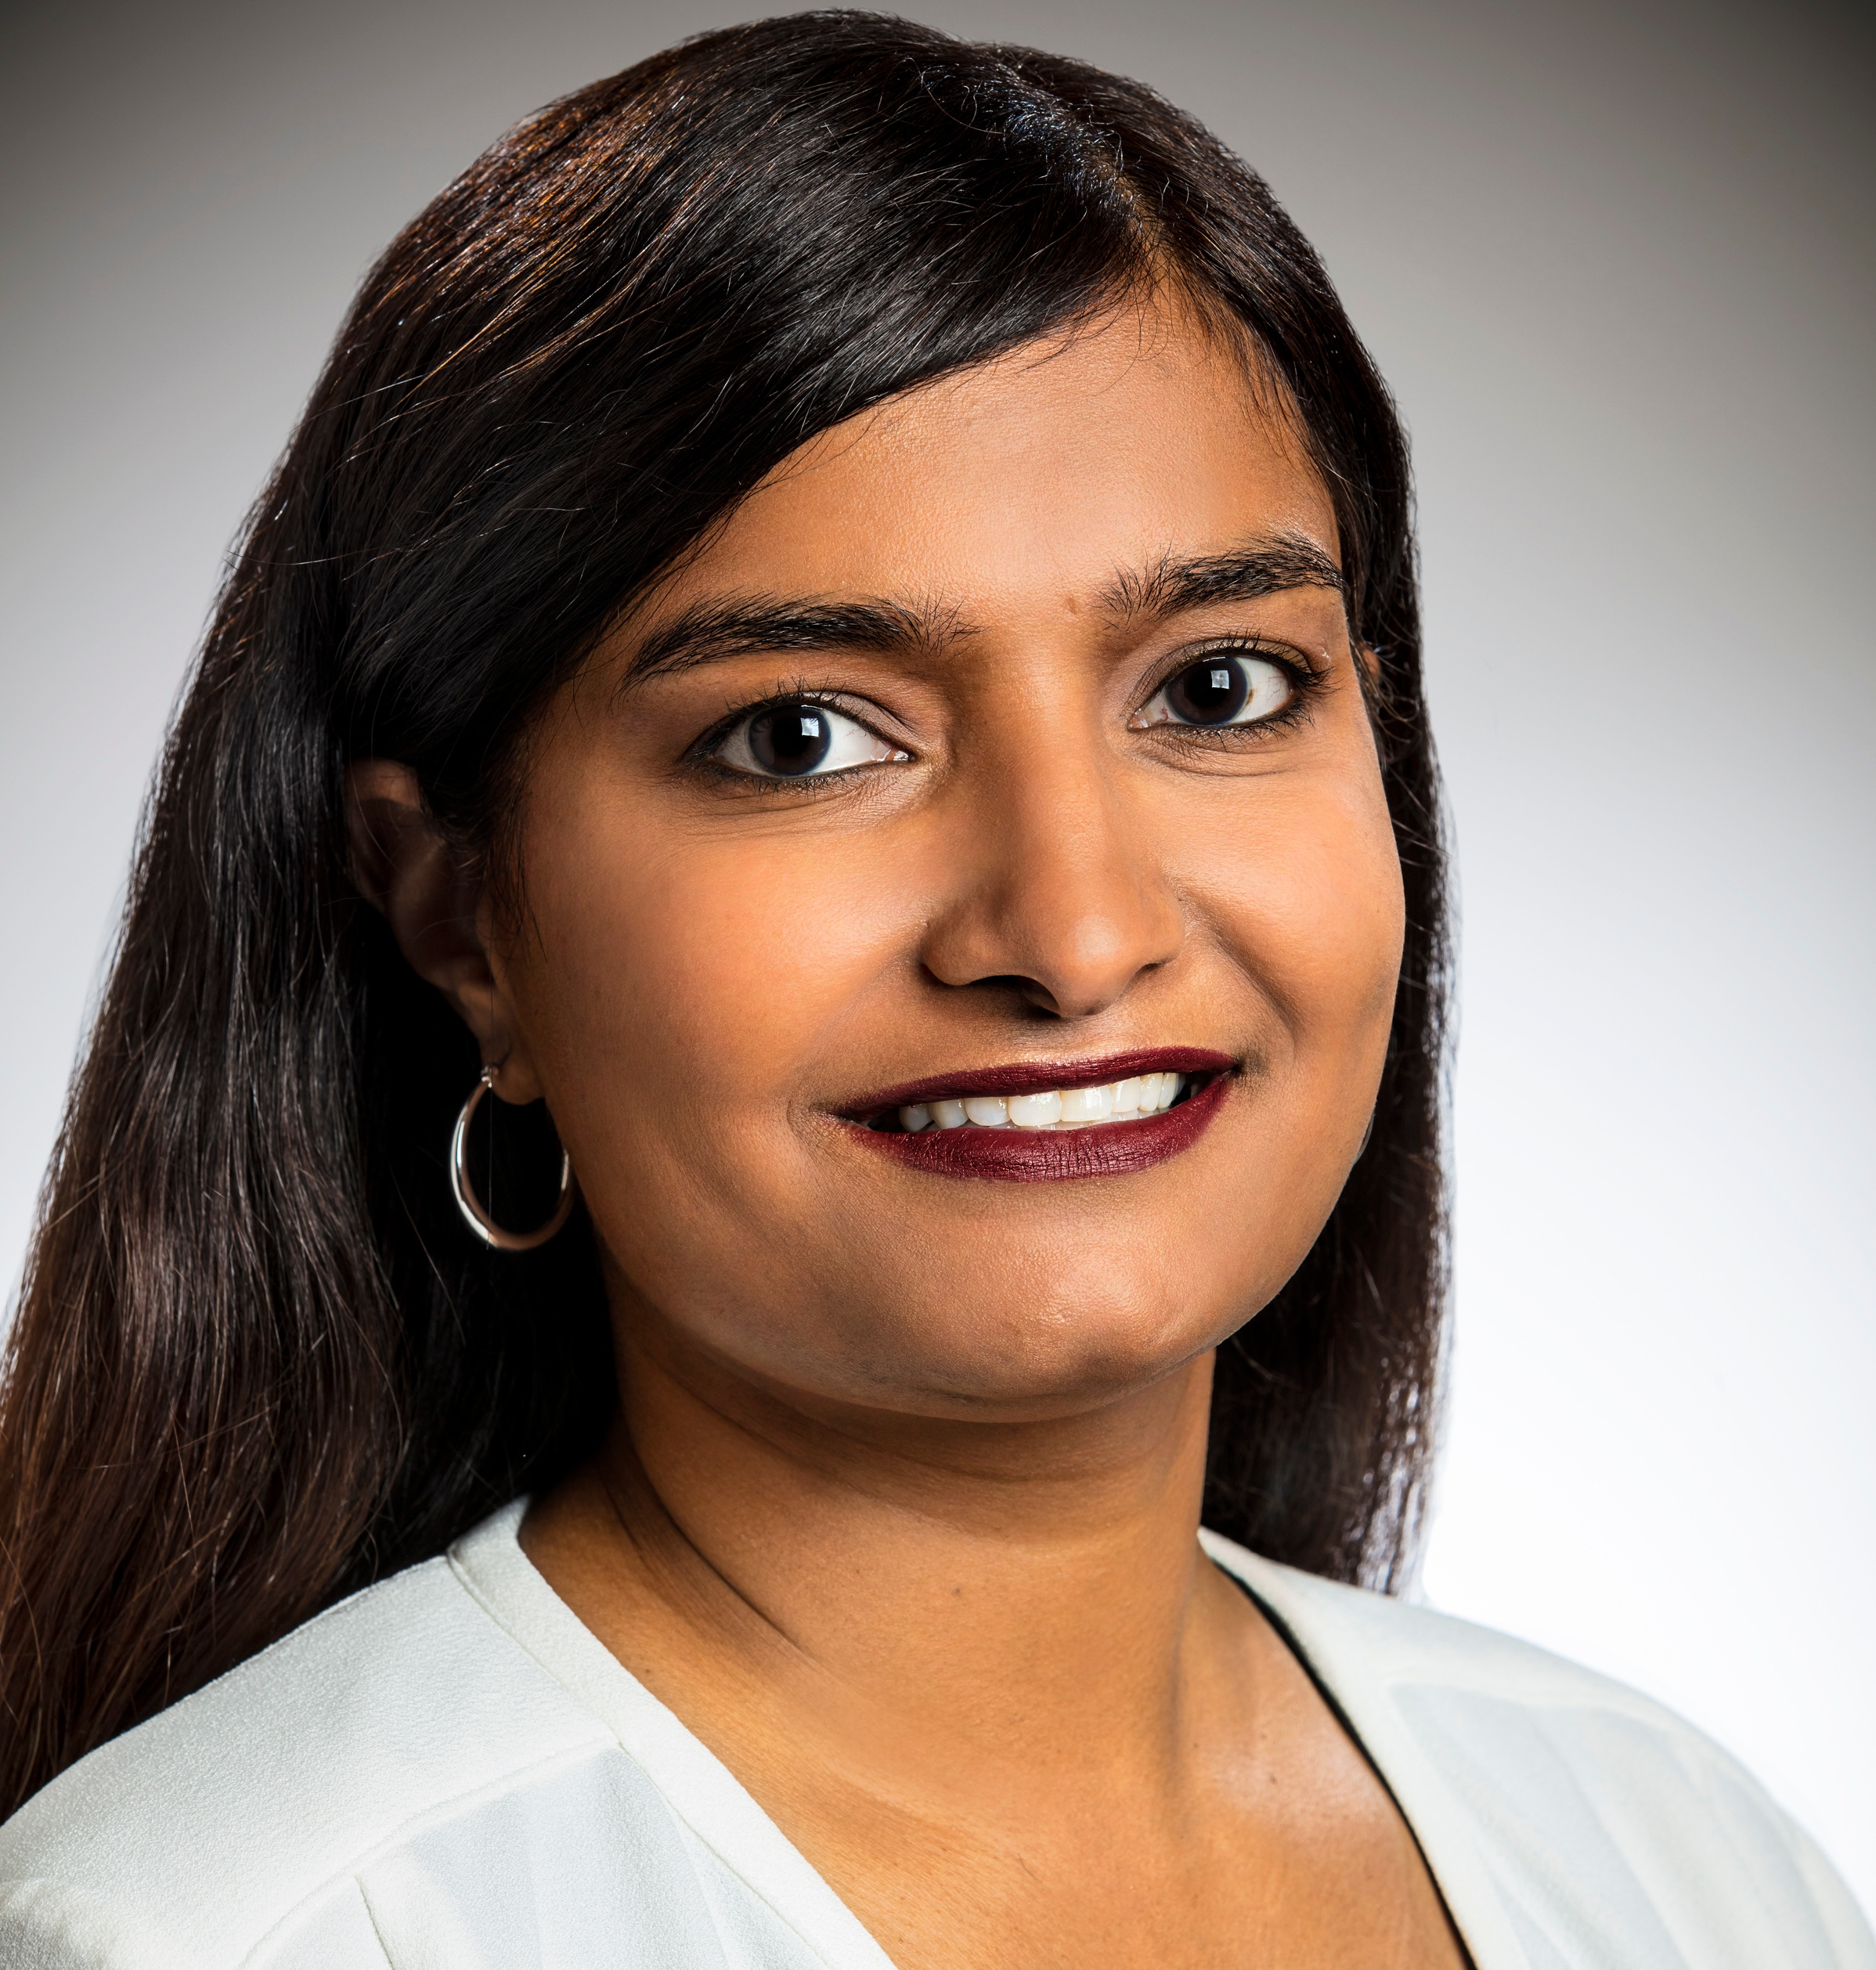 Kruti McDonald - Physician Assistant, Montclair Breast Center